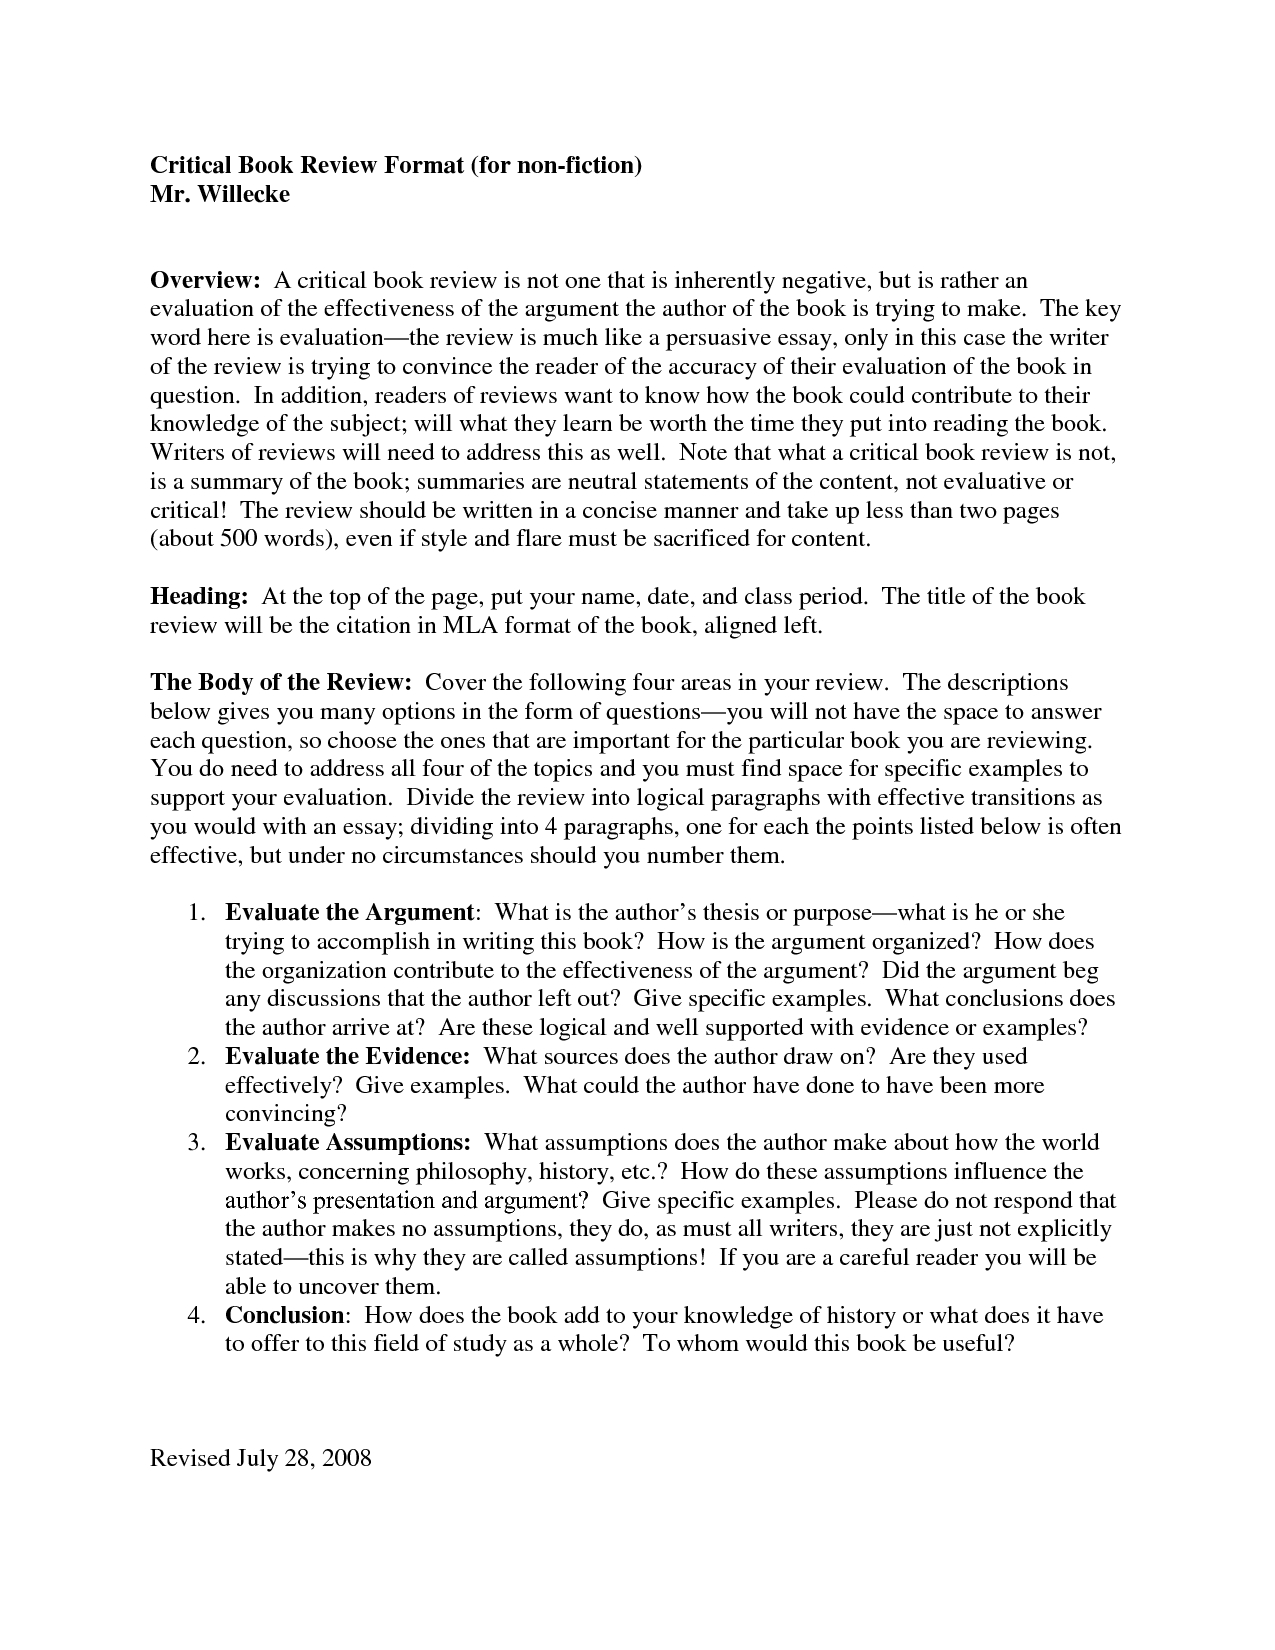 10 Lovely Good Book Ideas To Write ideas collection how to write a book review using apa format in best